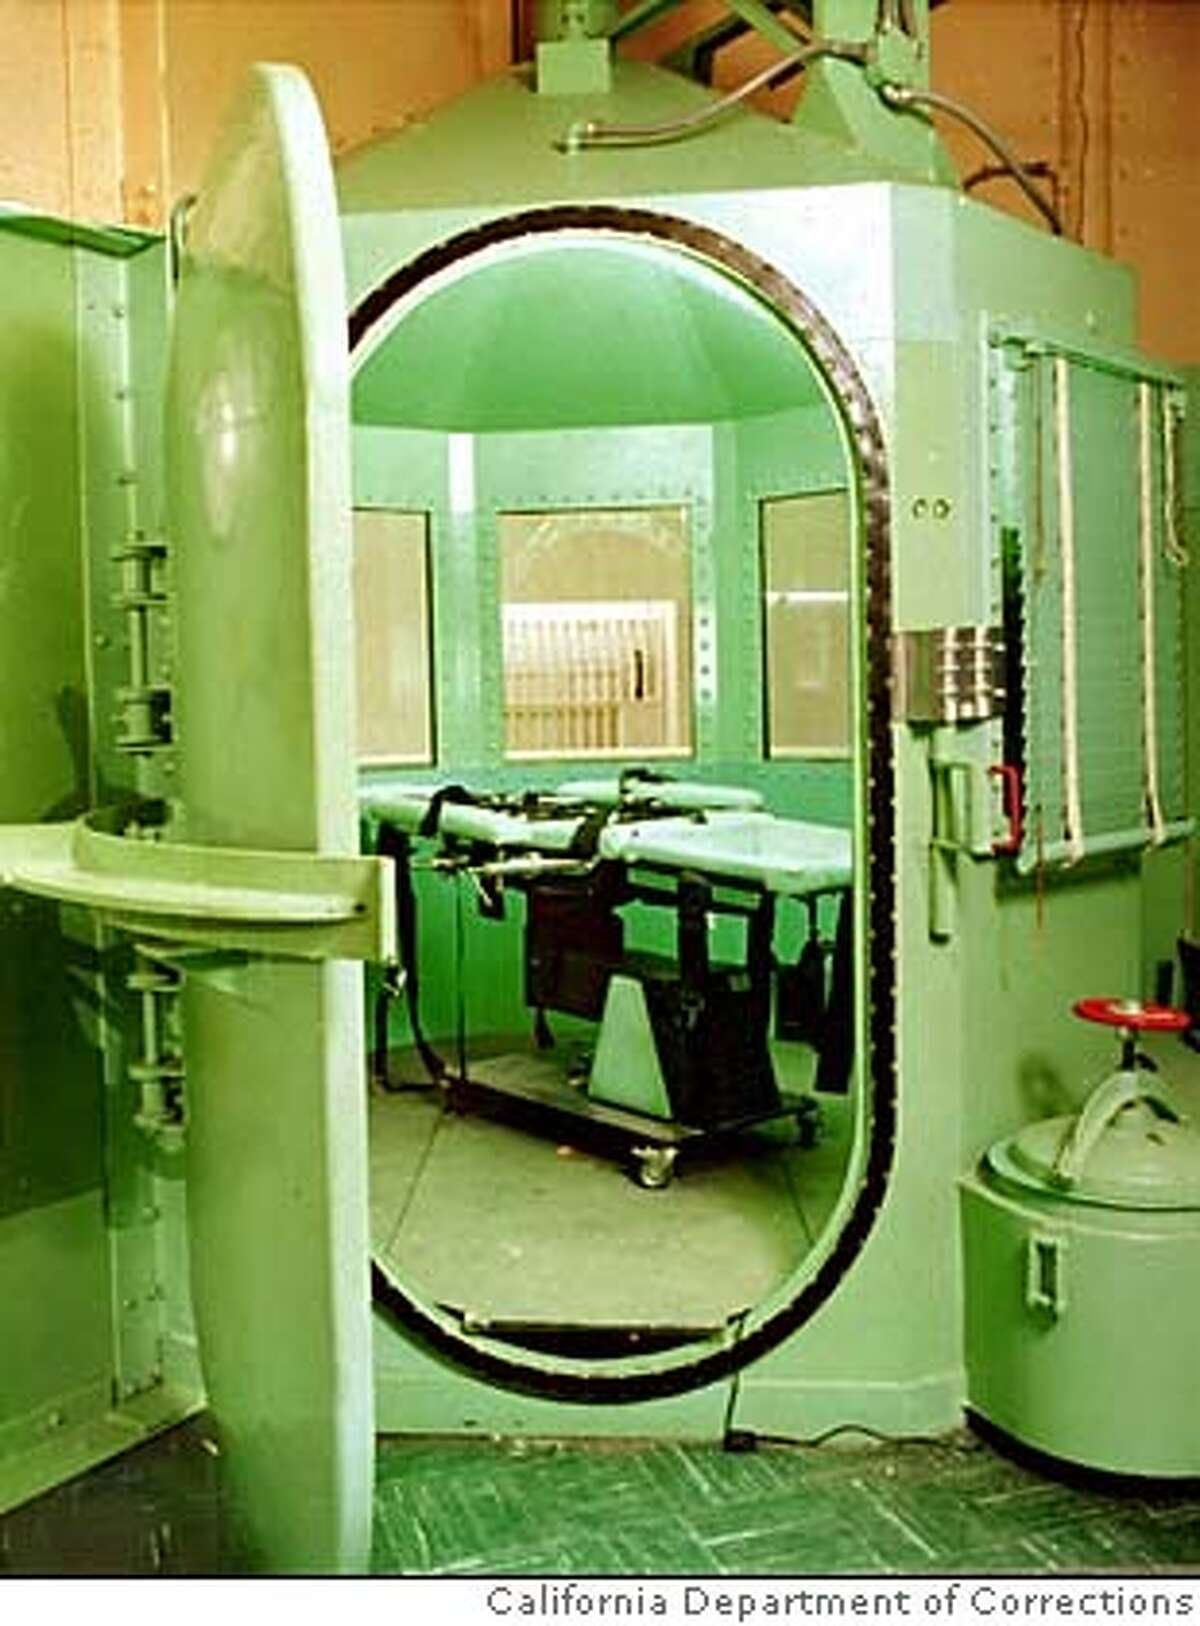 This is a California Department of Corrections photograph, taken January 1996, showing the entrance to the execution chamber and the lethal injection table at California's San Quentin Prison. On January 26, William Kirkpatrick Jr. will be taken to thisroom to be executed for the murder of two Burbank, Calif., fast-food workers.(AP Photo/California Dept. of Corrections) gas chamber ALSO RAN 4/26/02, 09/29/02 CAT